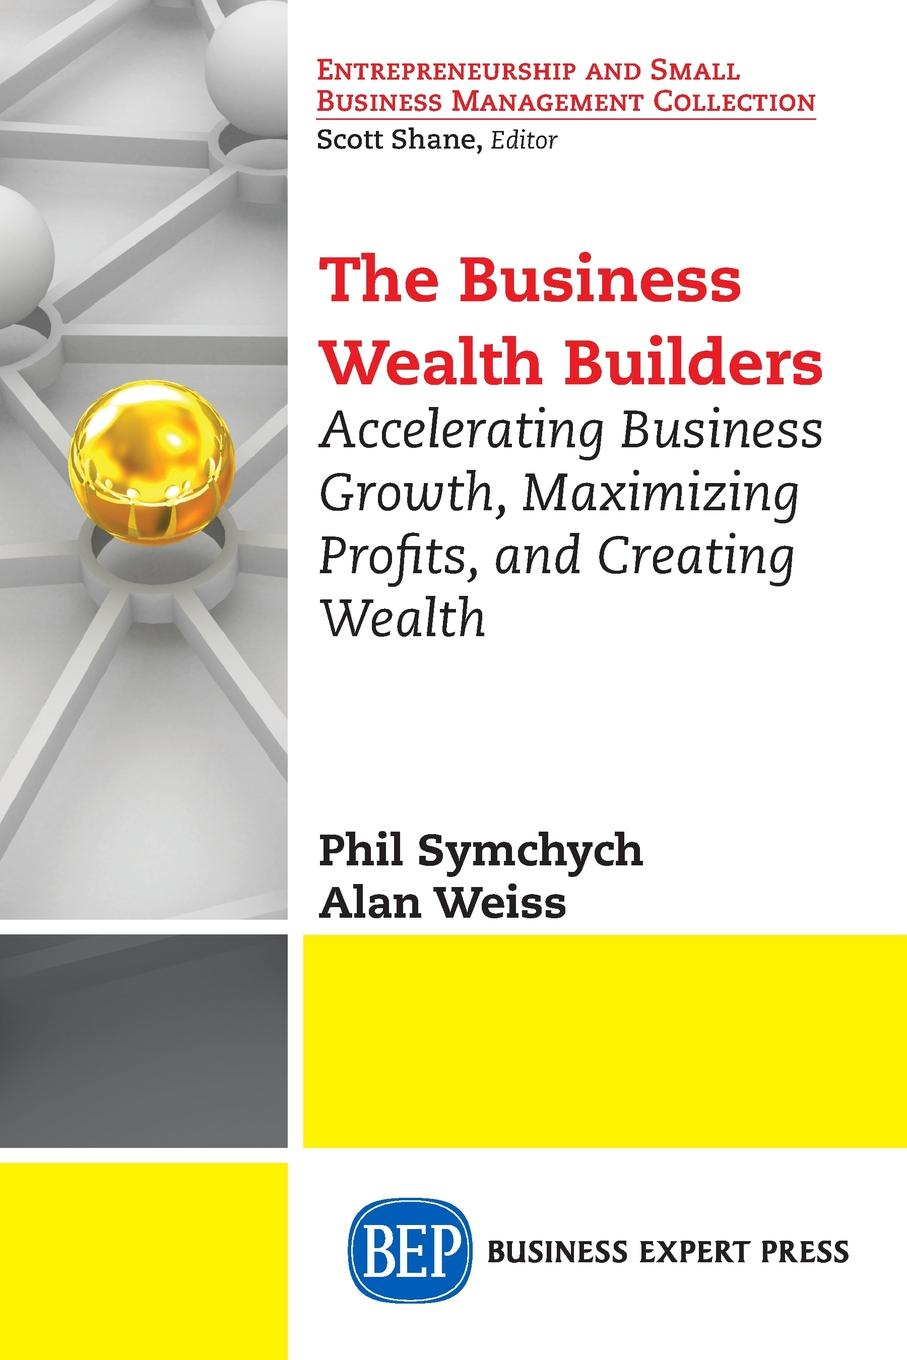 Phil Symchych, Alan Weiss The Business Wealth Builders. Accelerating Business Growth, Maximizing Profits, and Creating Wealth dave ulrich why the bottom line isn t how to build value through people and organization